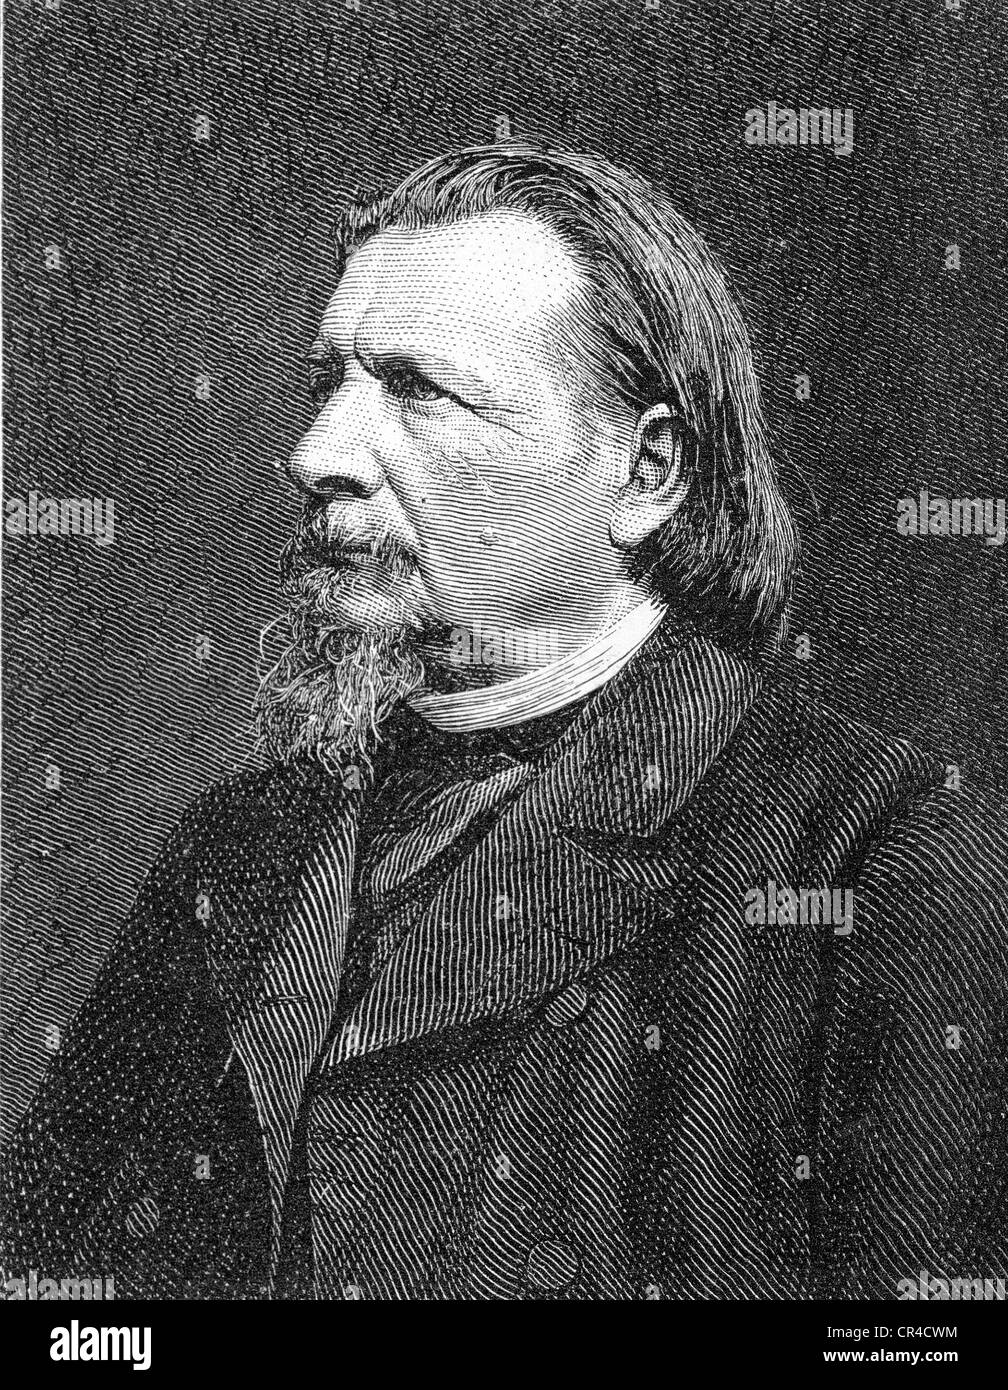 Karl Ferdinand Gutzkow (1811 - 1878), writer, steel engraving according to a photo from c. 1875 Stock Photo